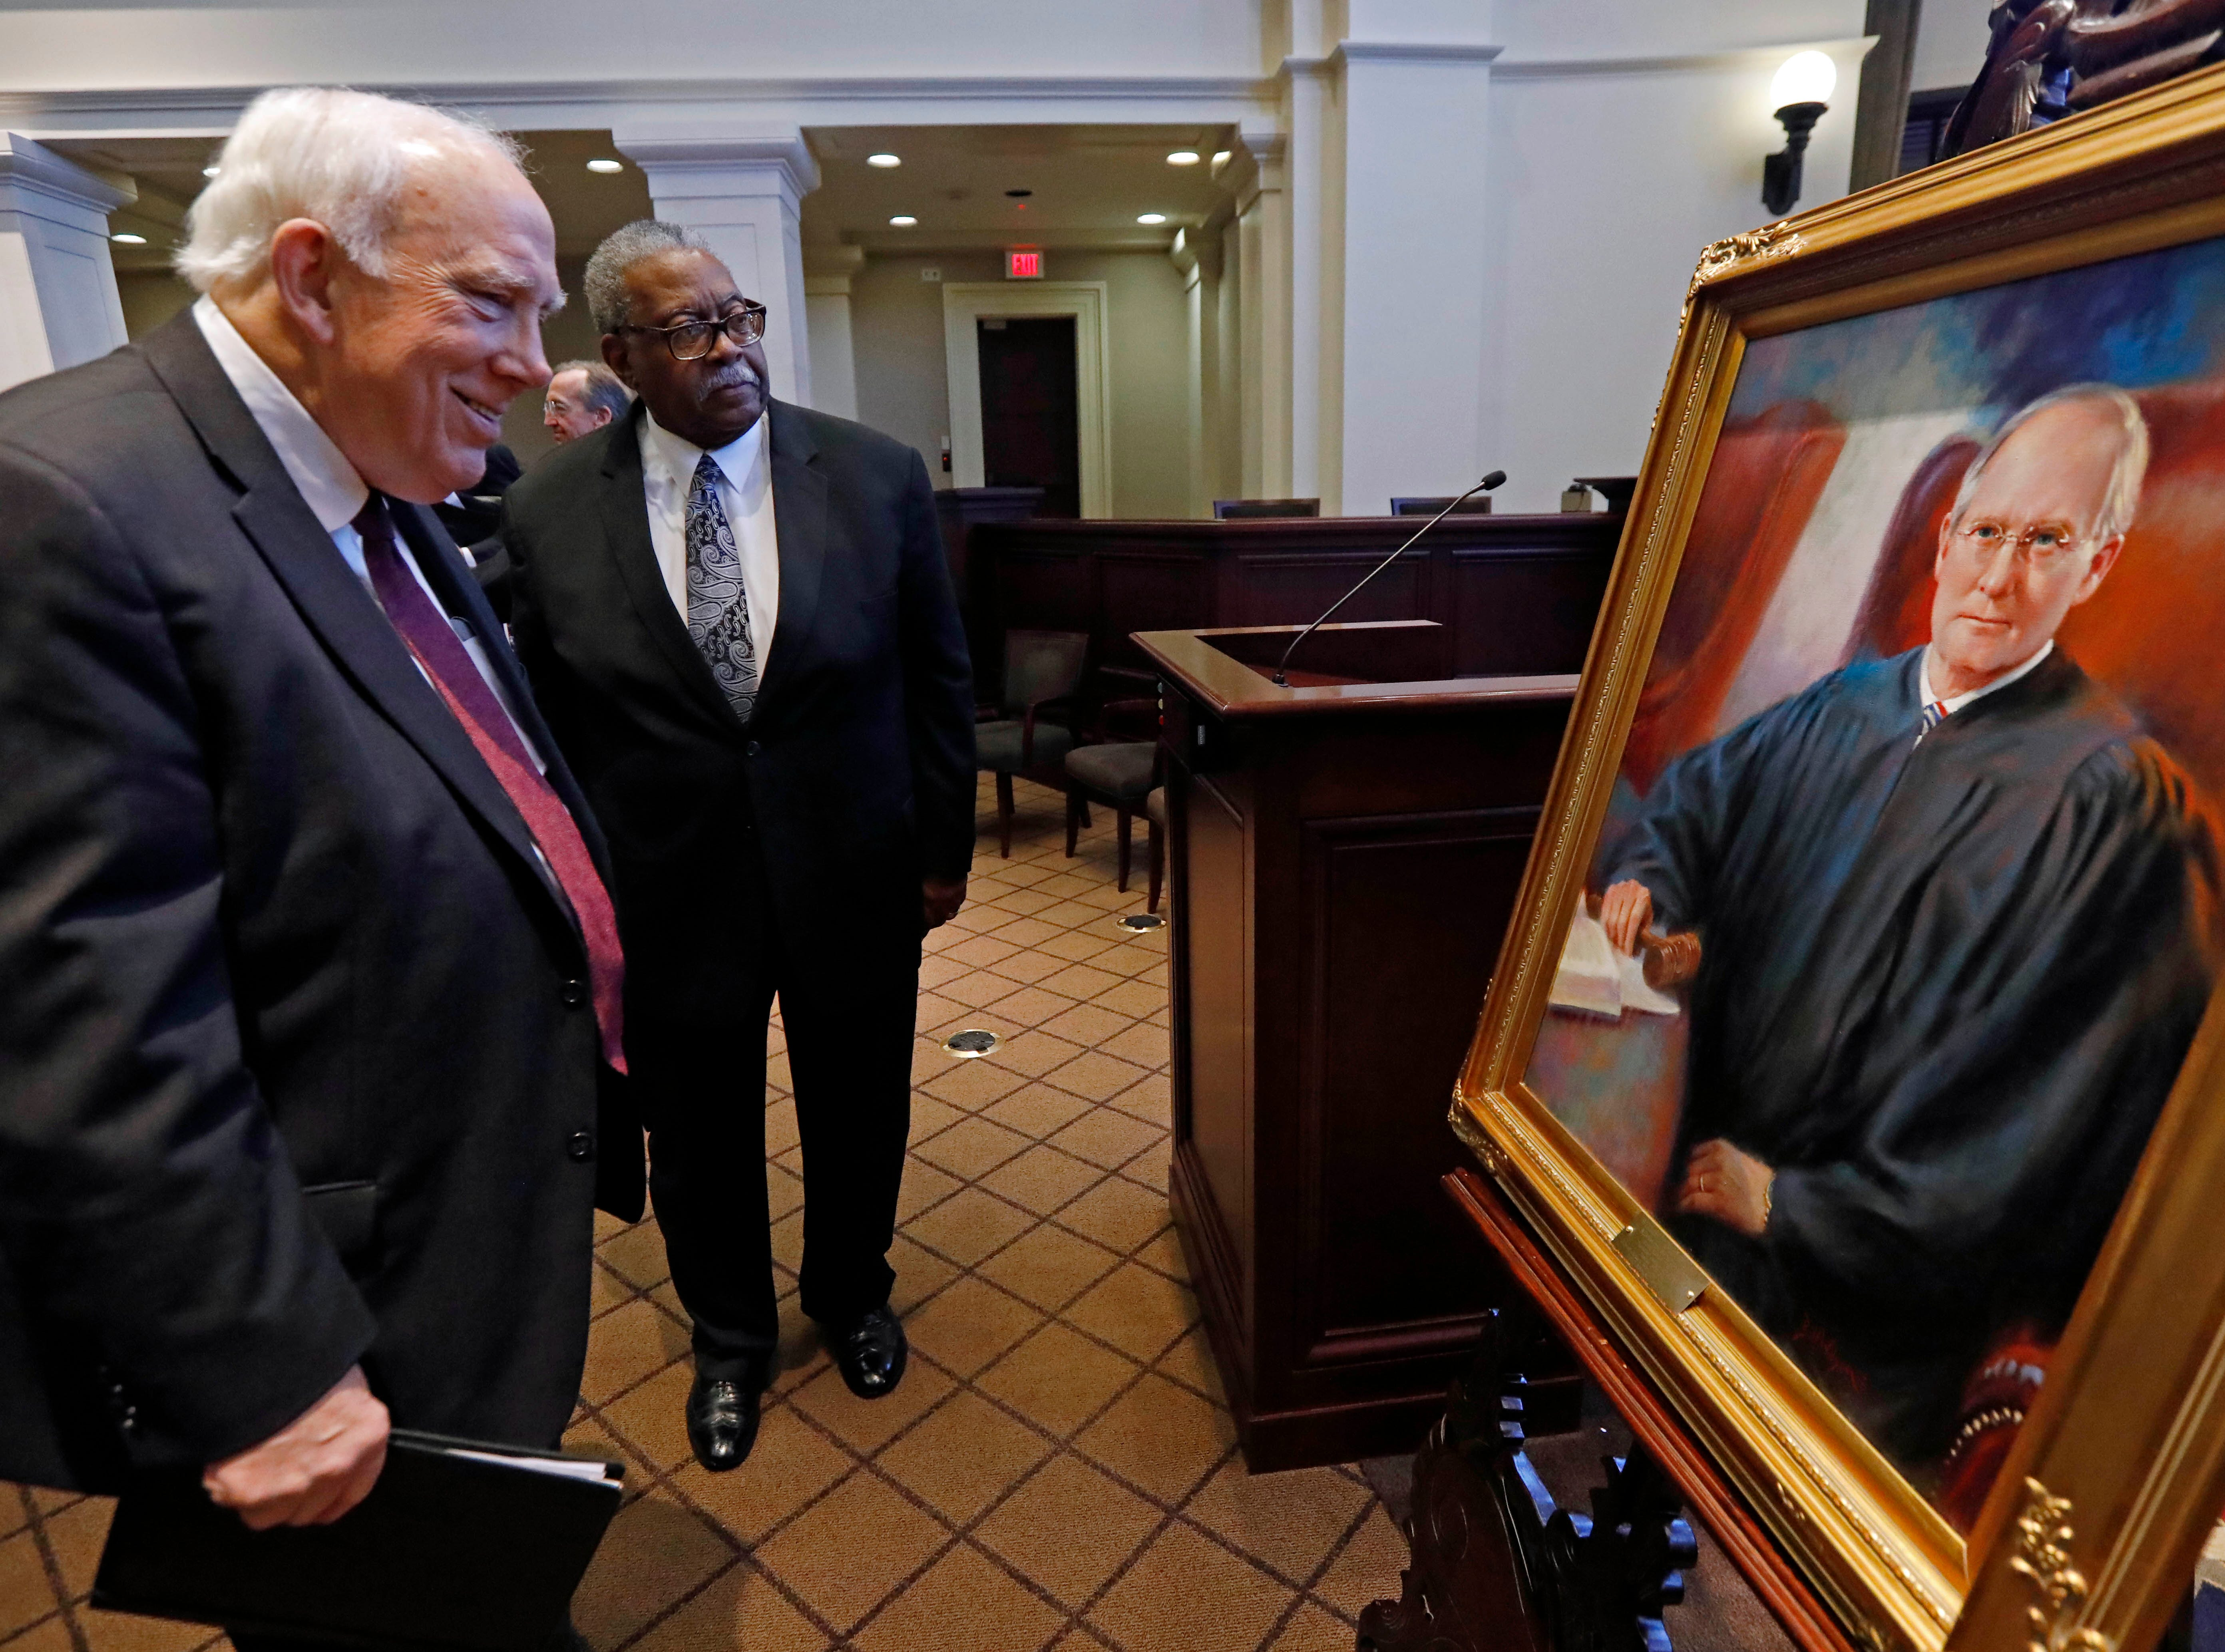 Presiding Supreme Court Justice James W. Kitchens, left, and Associate Justice Leslie D. King, inspect the portrait of Mississippi Supreme Court Chief Justice William L. Waller Jr., during a retirement ceremony honoring Waller at the Mississippi Supreme Court chambers in Jackson, Miss., Friday, Jan. 25, 2019. Waller officially retires on January 31 after more than 21 years of service on the Supreme Court and 10 years as Chief Justice. (AP Photo/Rogelio V. Solis)